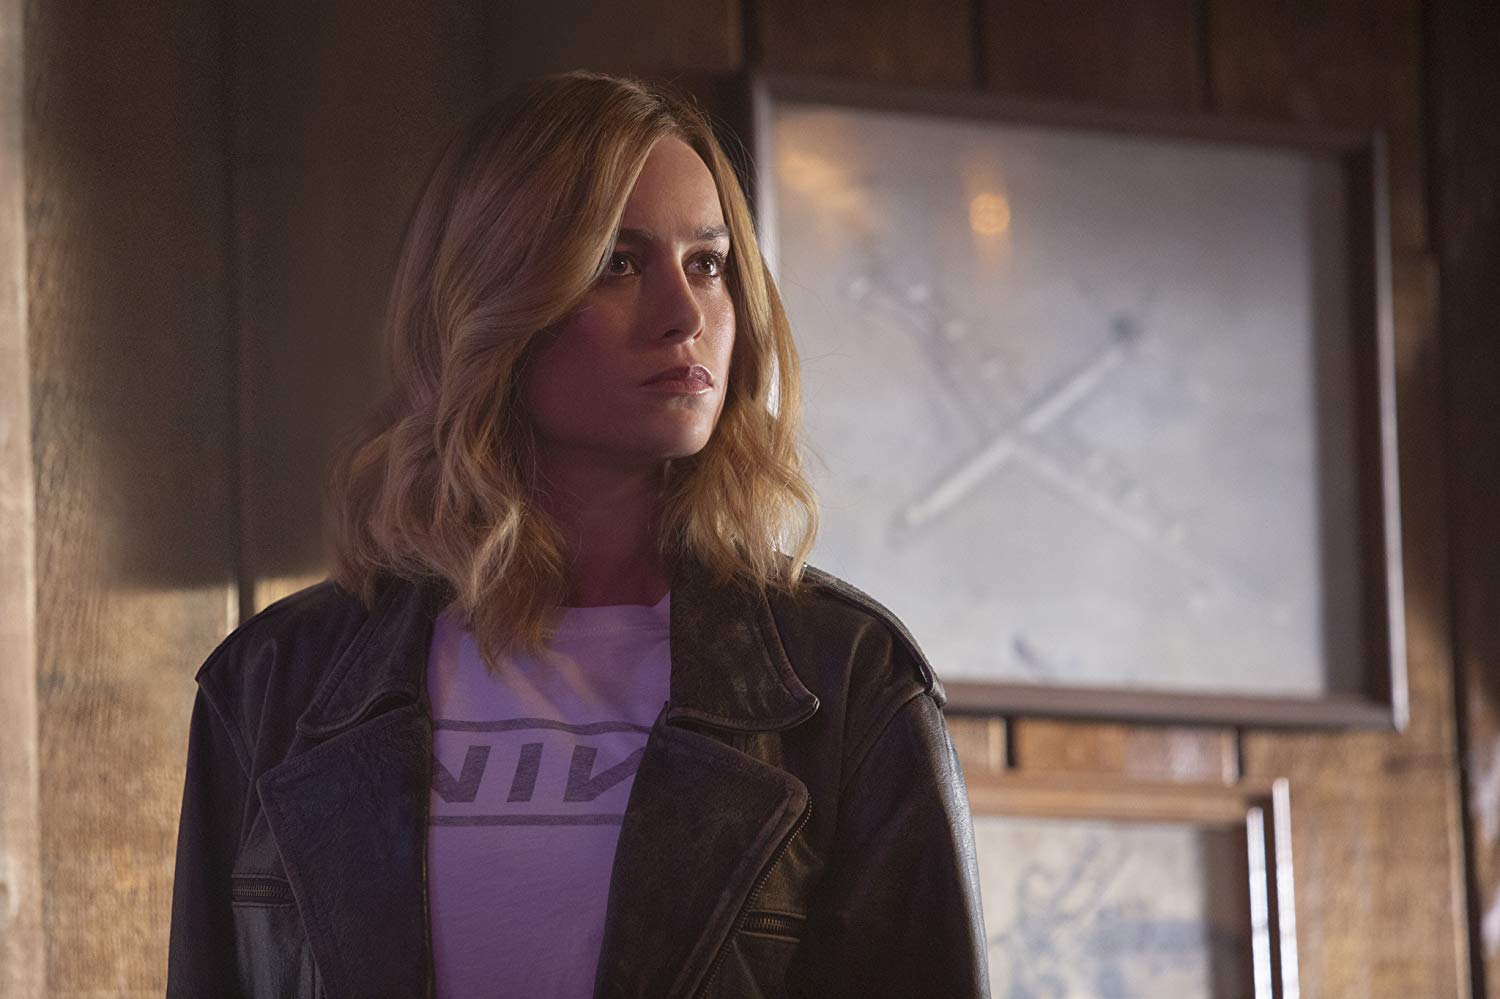 Film Review: Captain Marvel Isn't What You'd Expect— And That's a Good Thing - Blog Post, March 27, 2019